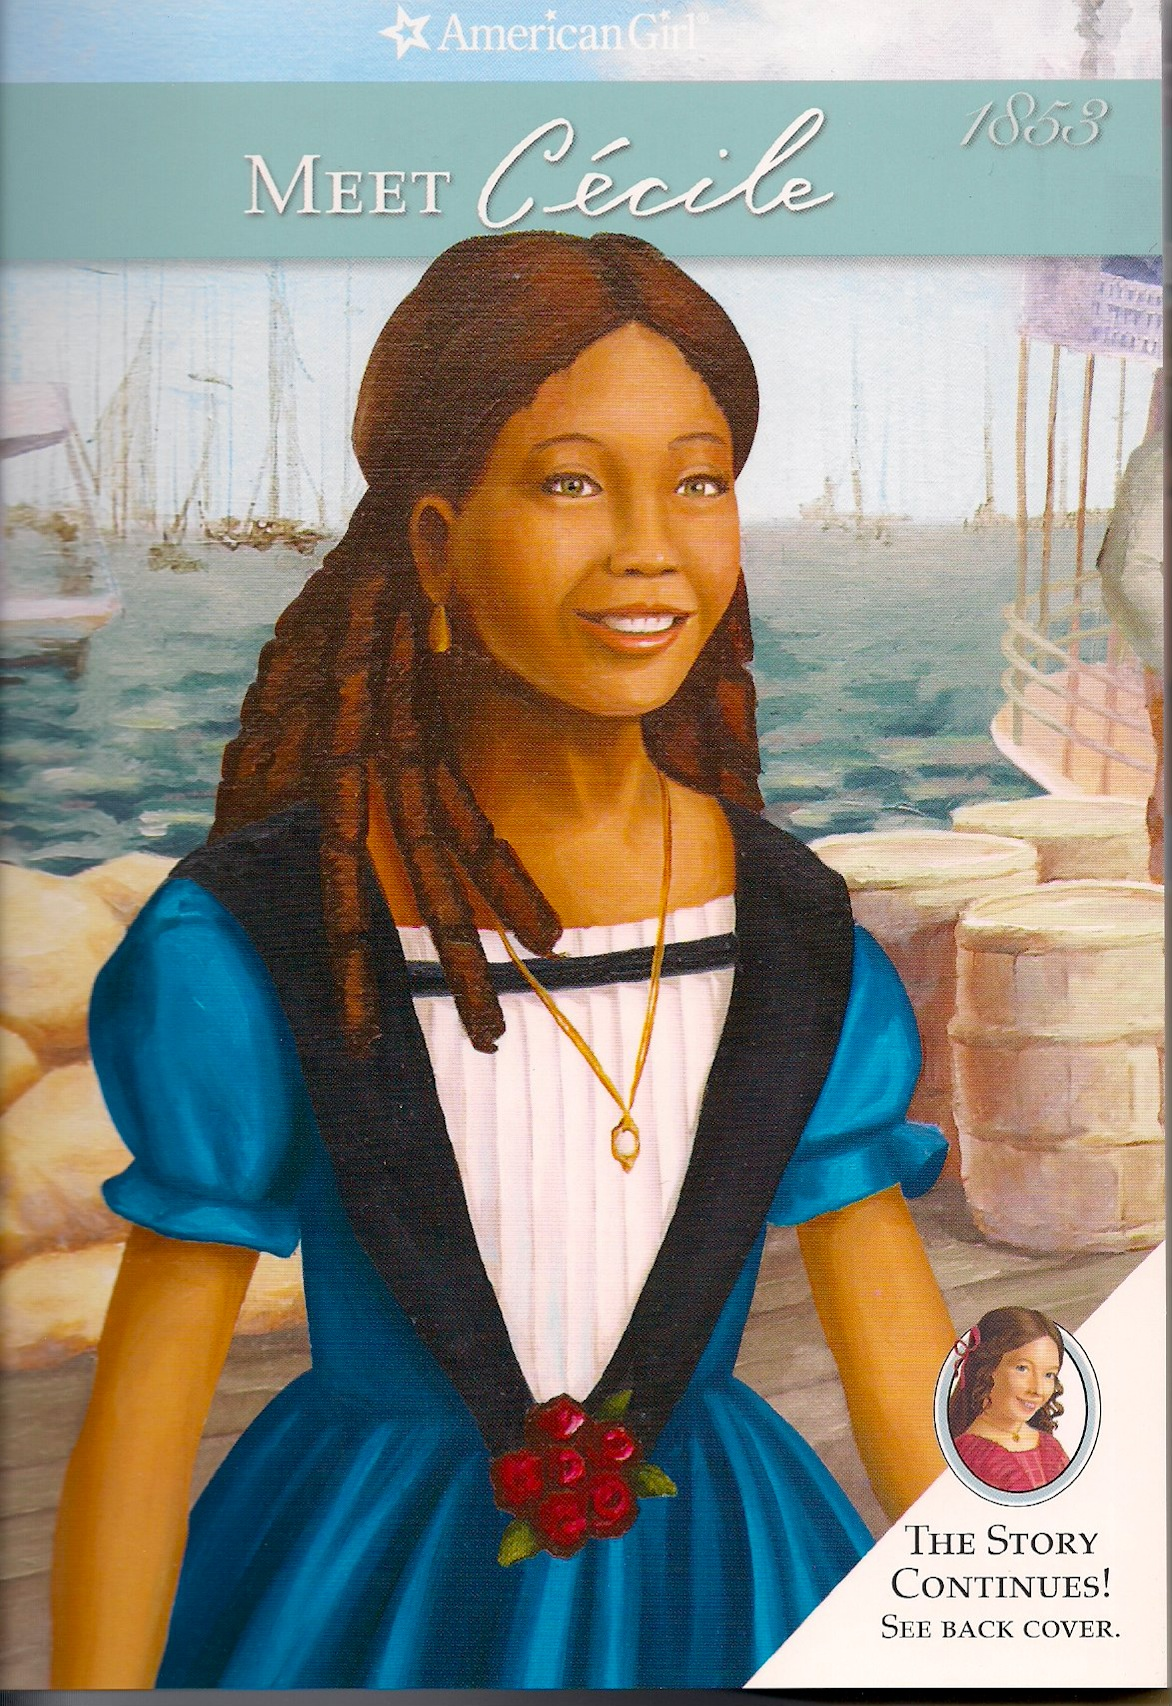 phillis wheatley thesis Essay on phillis wheatley 1643 words 7 pages phillis wheatley, one of america's most profound writers, has contributed greatly to american literature, not only as a writer, but as an african american woman, who has influenced many african americans by enriching their knowledge of and exposure to their negro heritage and negro literature.